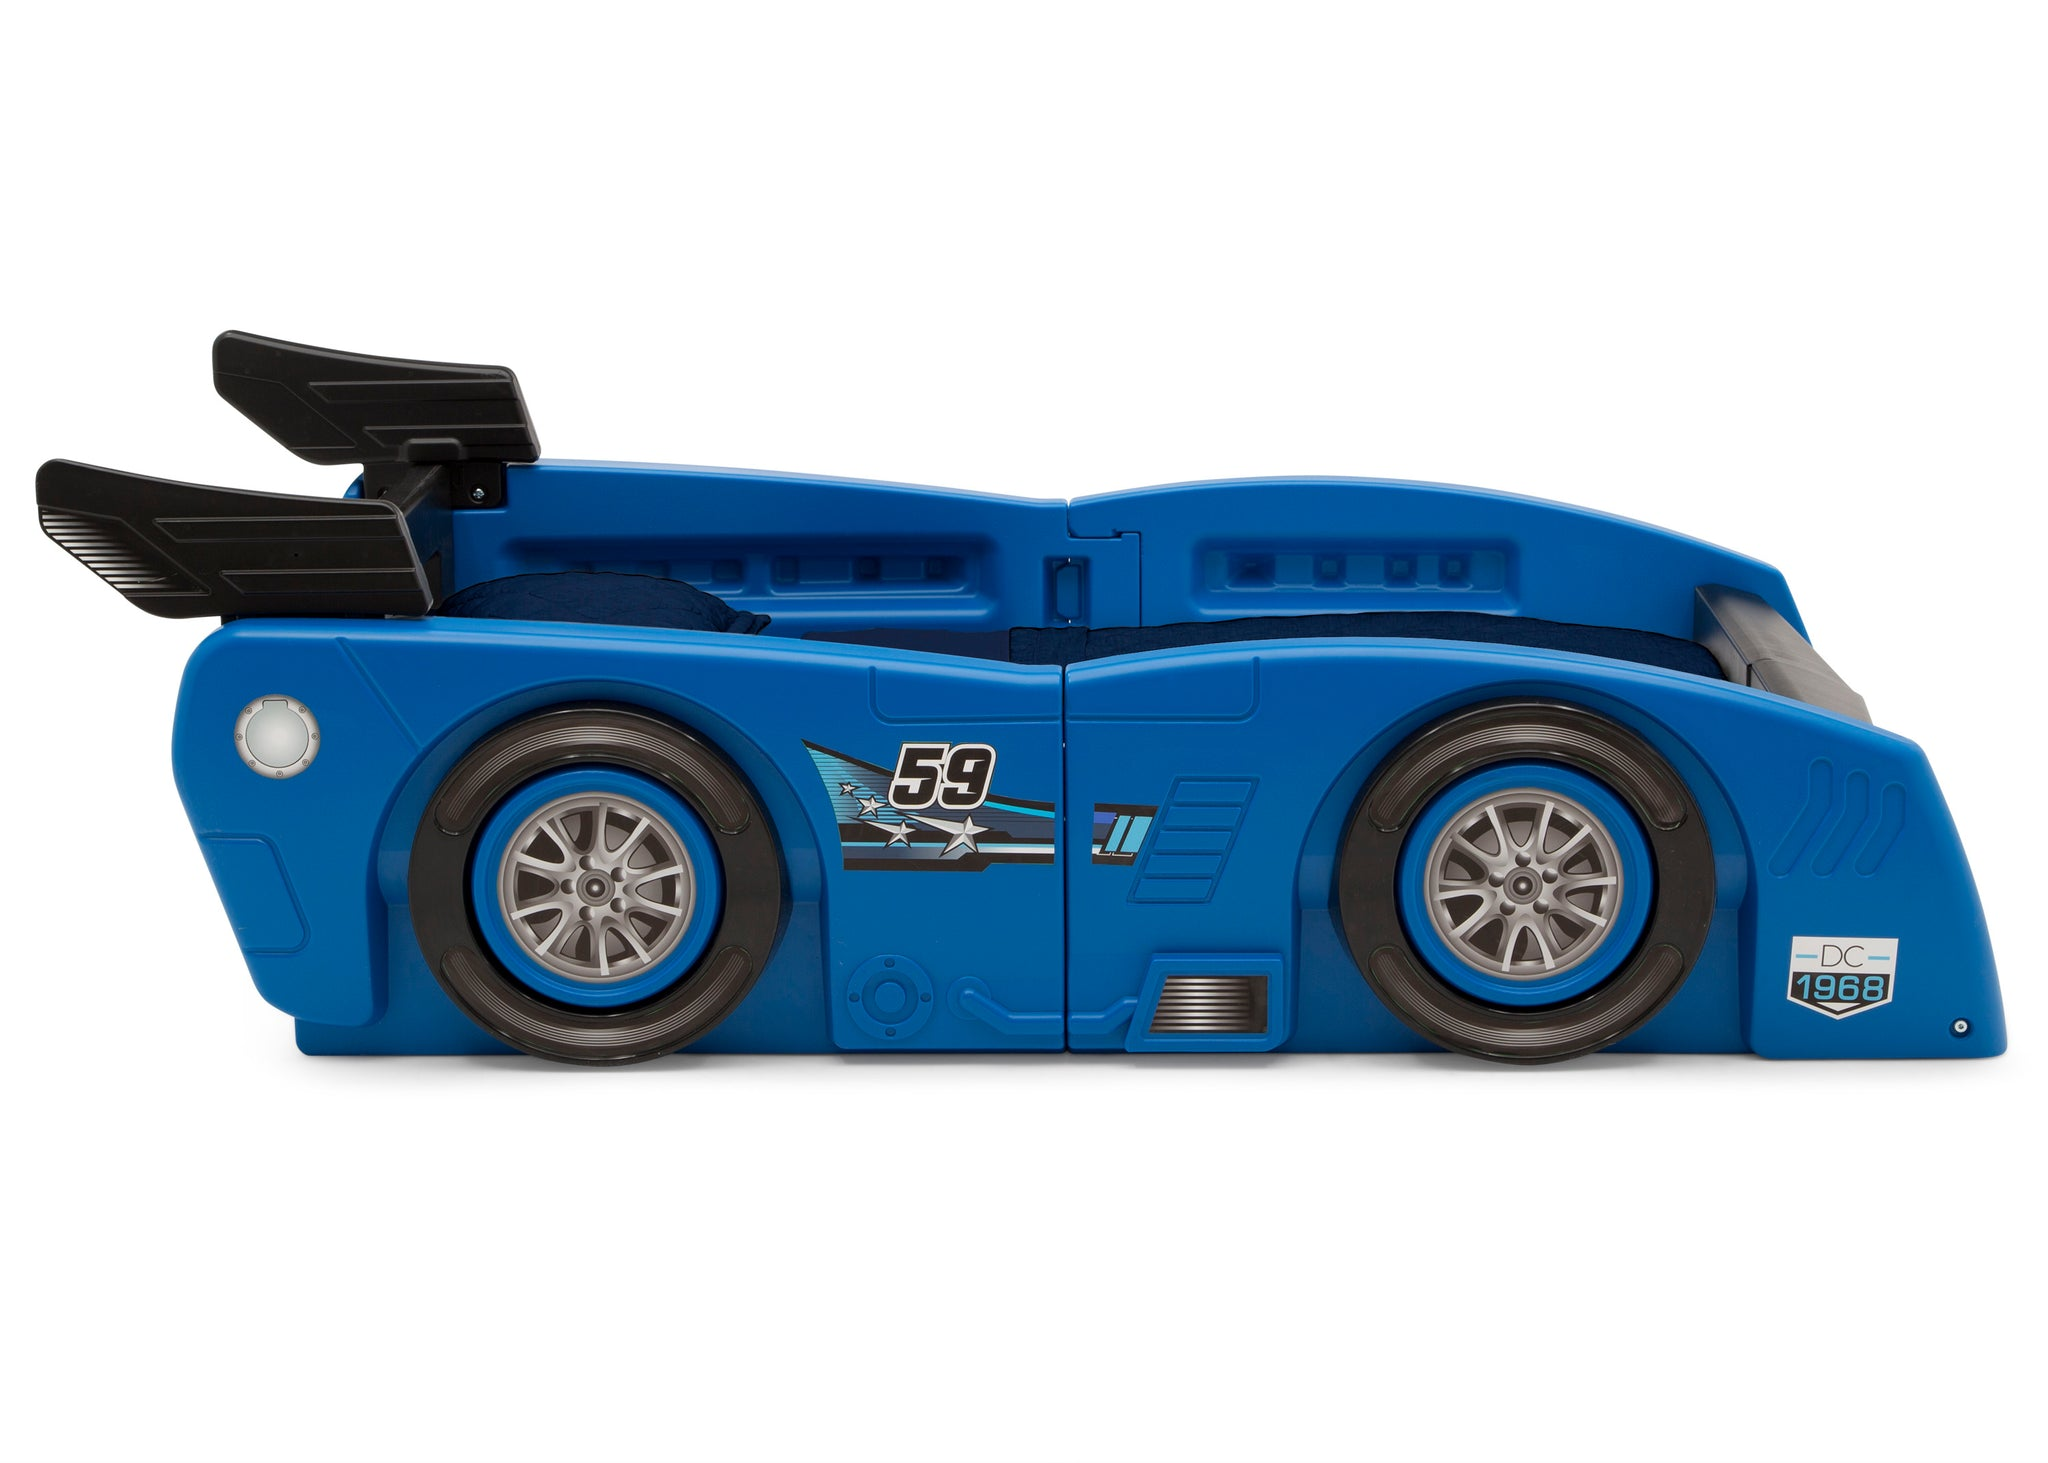 Delta Children Blue & Black (485) Grand Prix Race Car Toddler-to-Twin Bed, Toddler Side Silo View